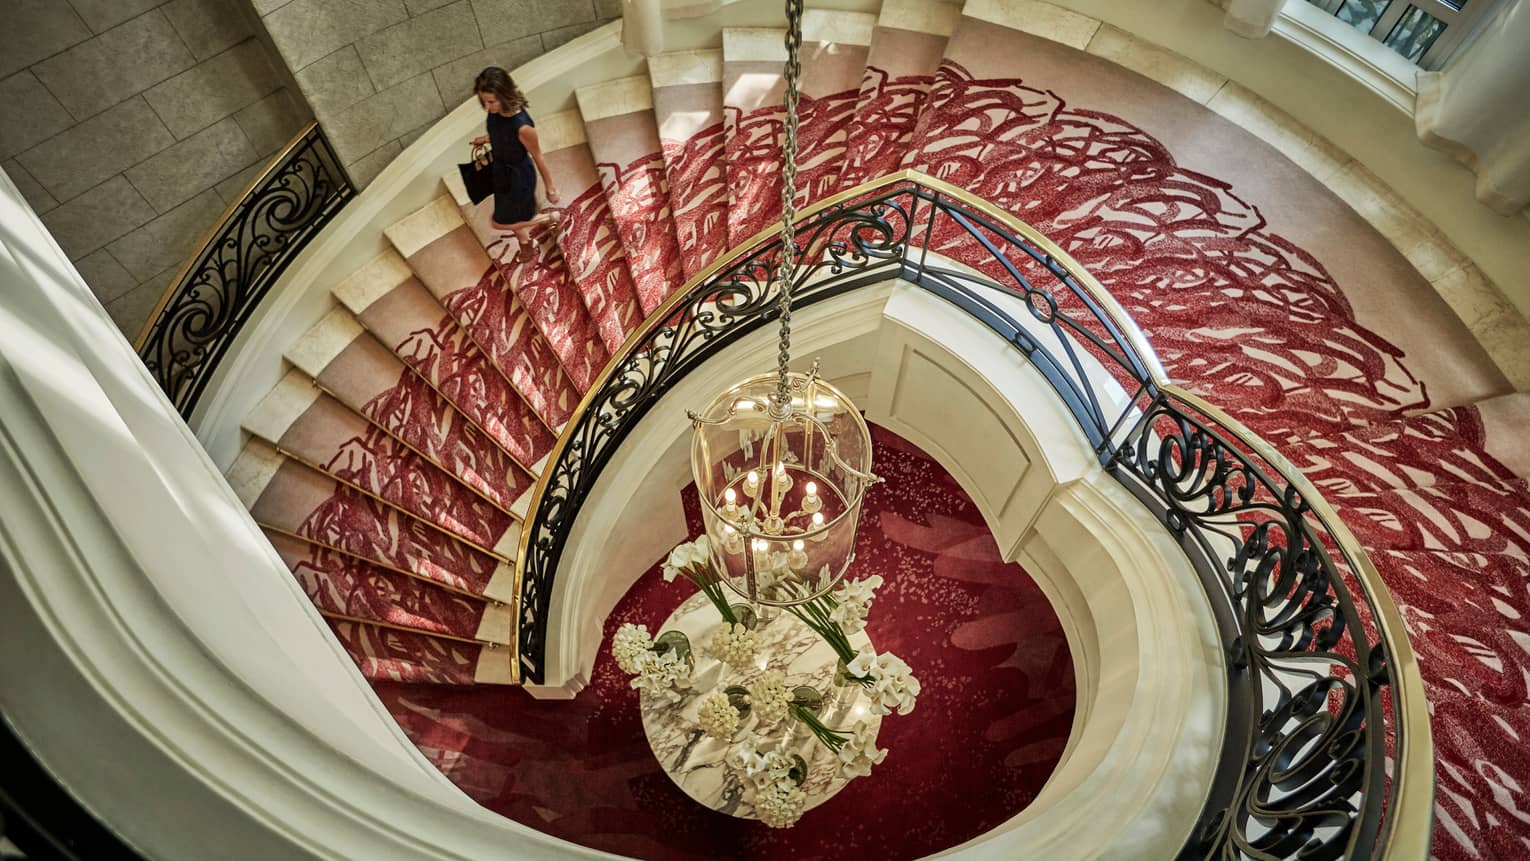 Aerial view of woman walking down white spiral staircase with red carpet, gold railing